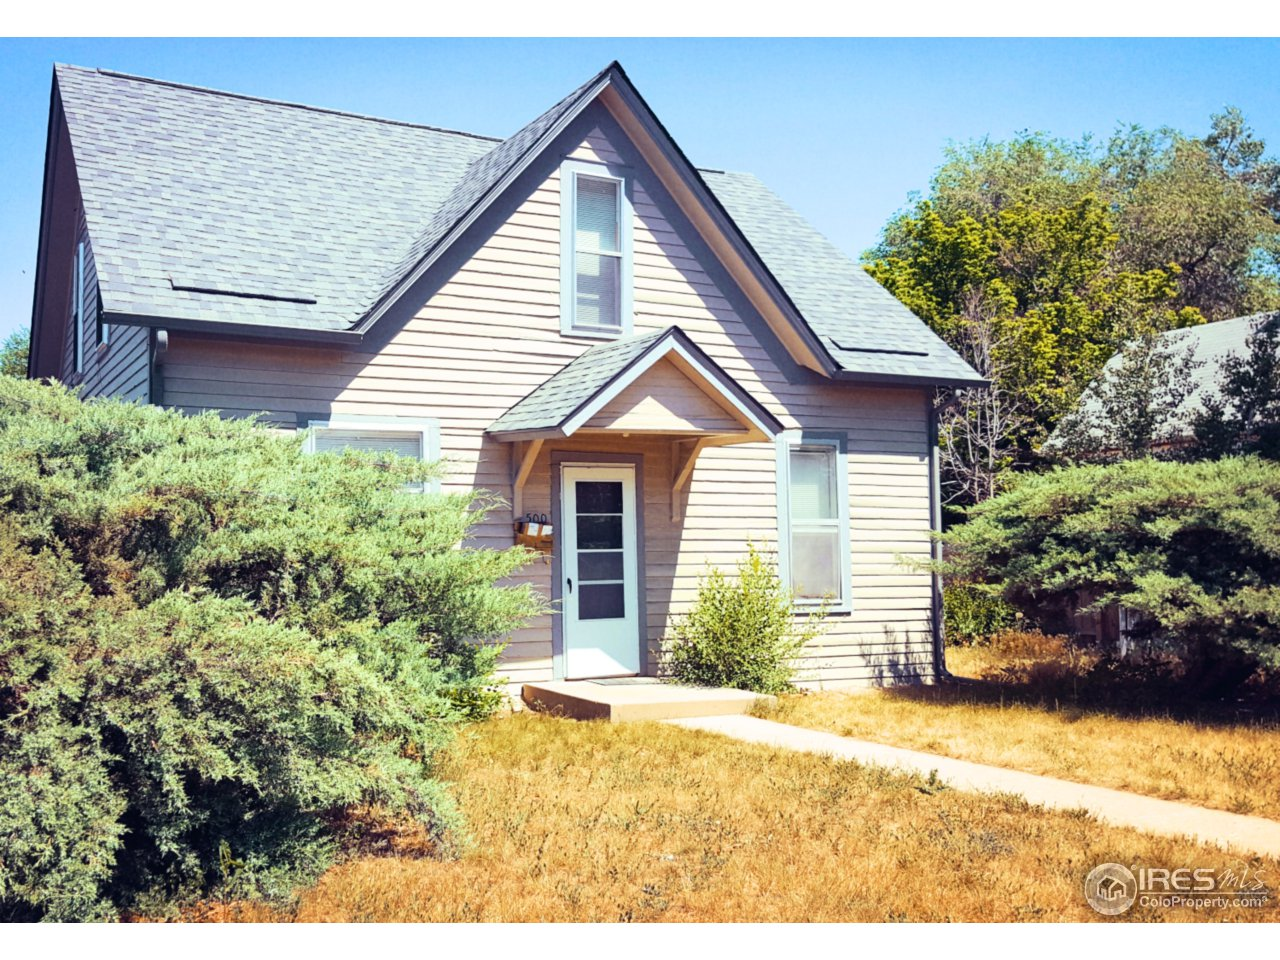 500 Stover St, Fort Collins CO 80524